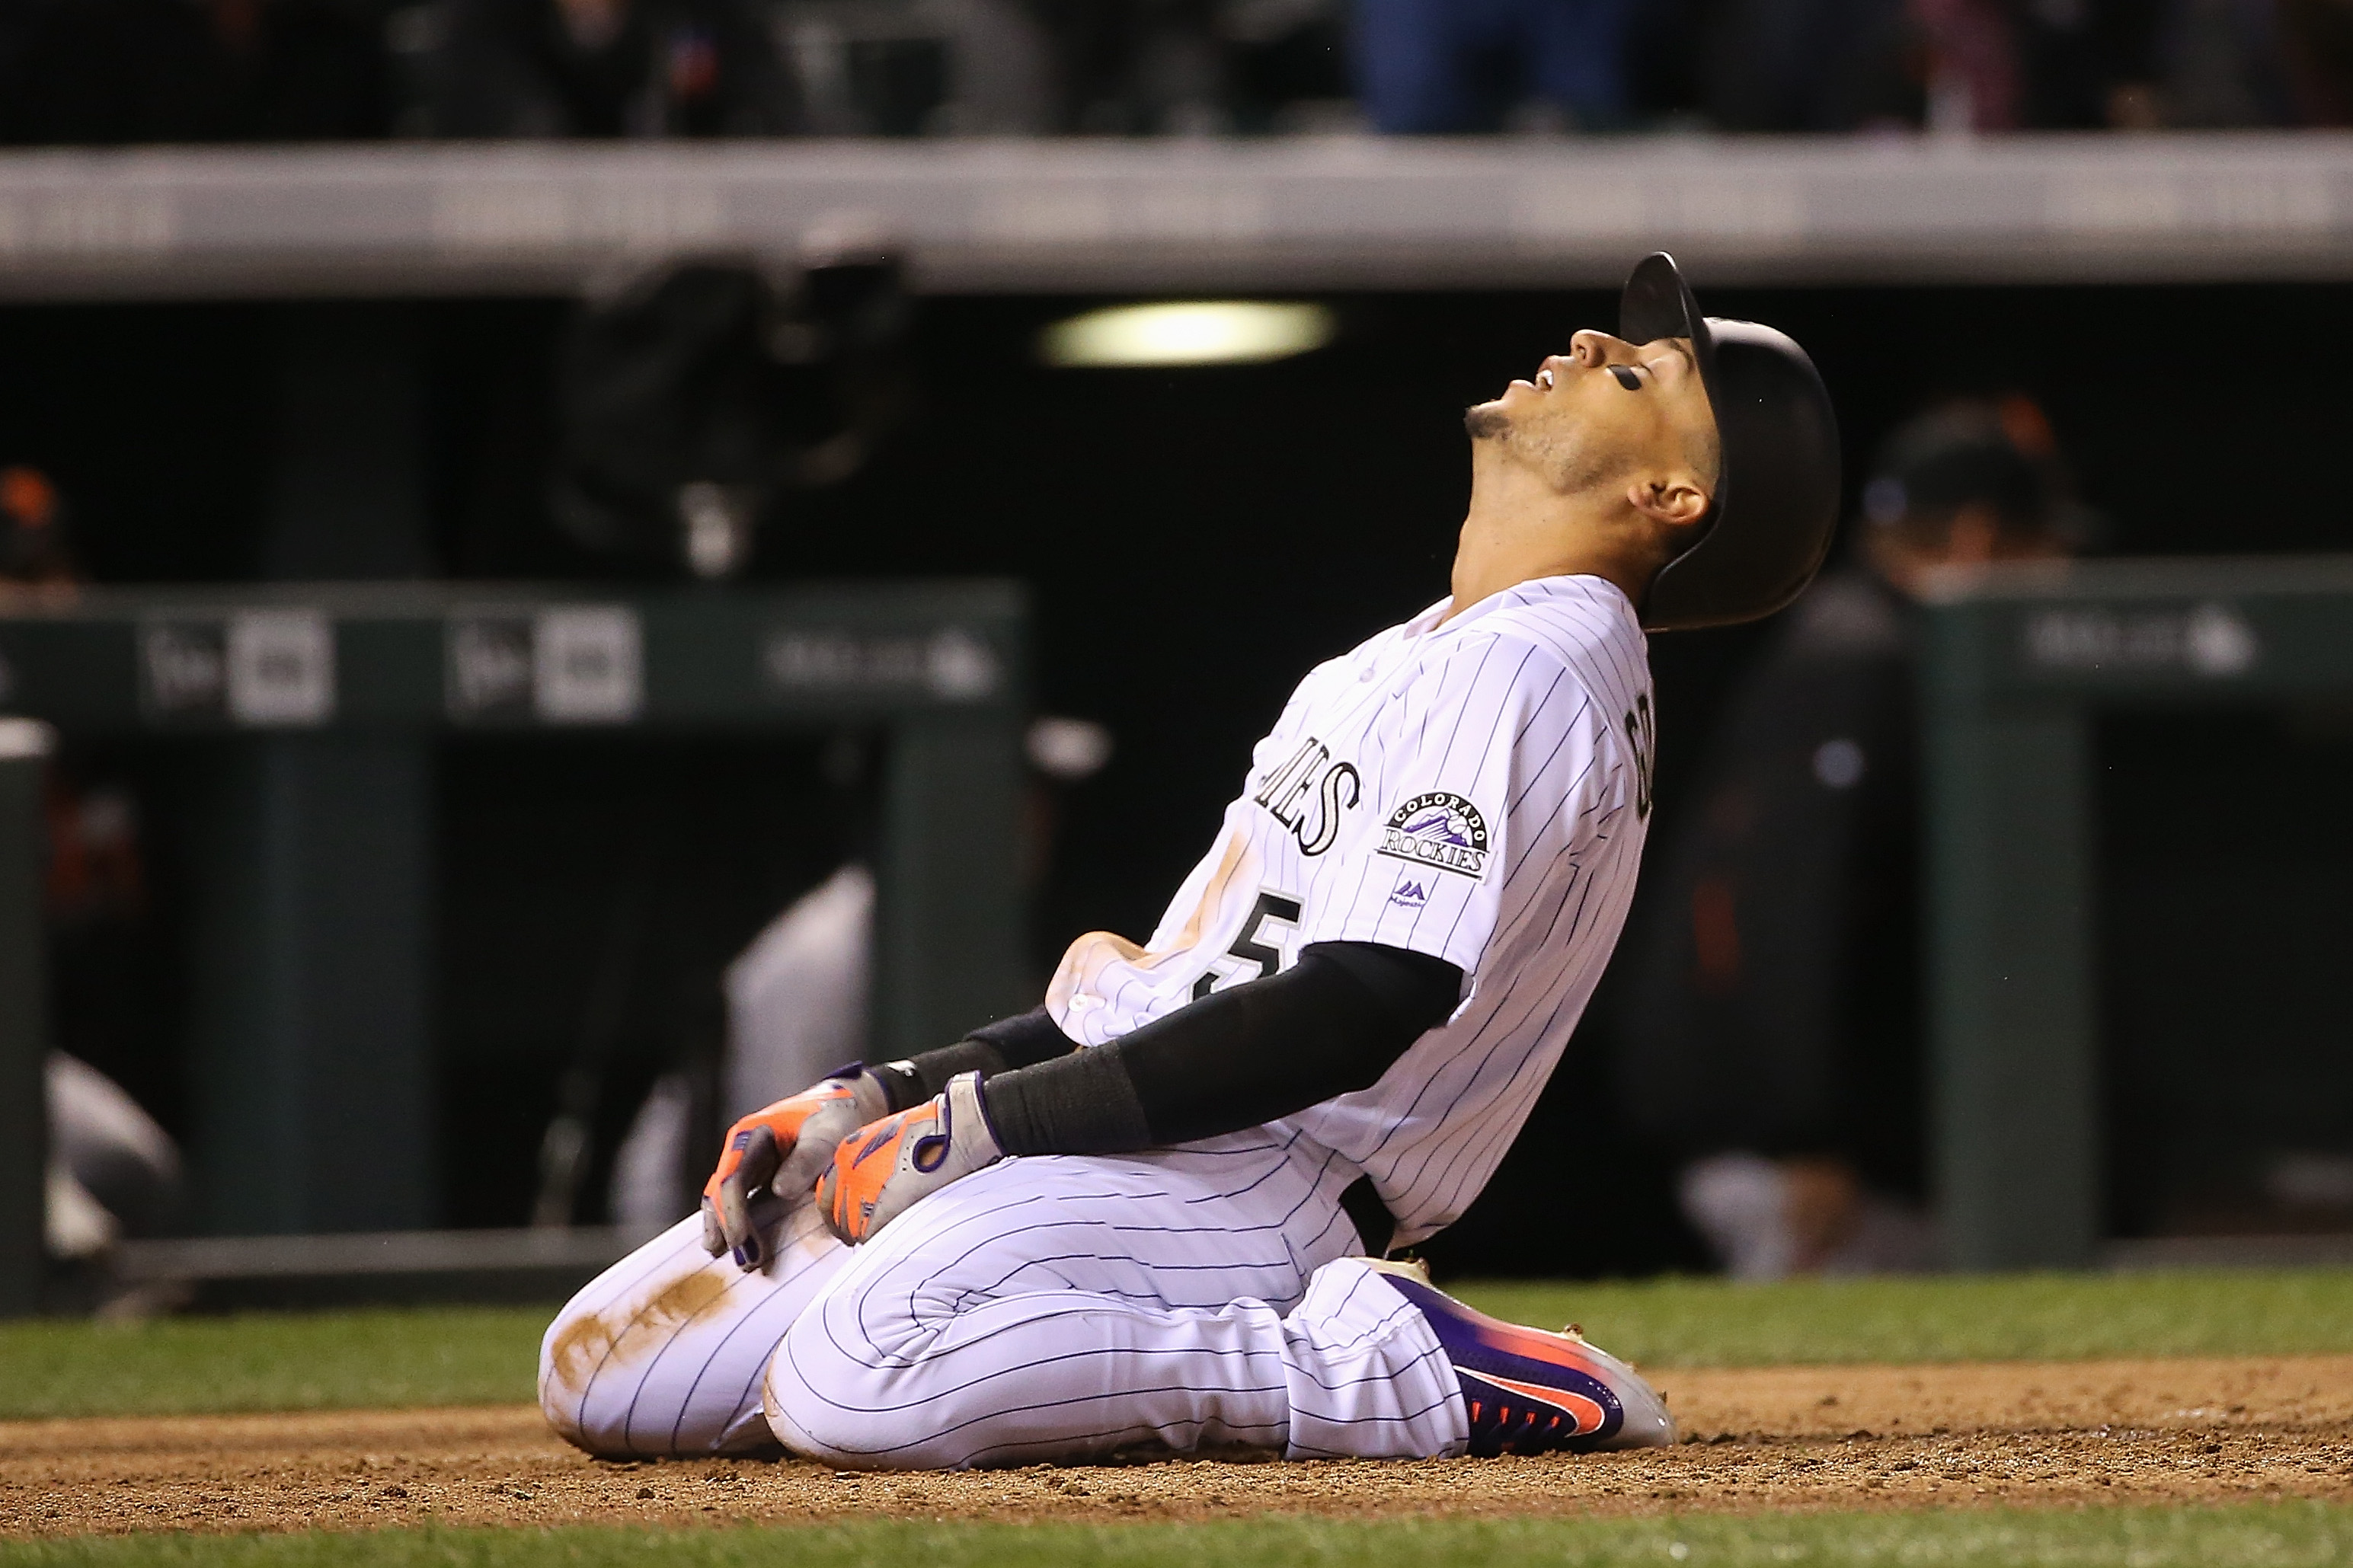 Carlos Gonzalez #5 of the Colorado Rockies reacts after being tagged out at home plate by catcher Trevor Brown #14 of the San Francisco Giants while tying to score on a single by Nolan Arenado #28 of the Colorado Rockies to end the fifth inning at Coors Field on April 12, 2016 in Denver, Colorado. The Giants defeated the Rockies 7-2. (Photo by Doug Pensinger/Getty Images)